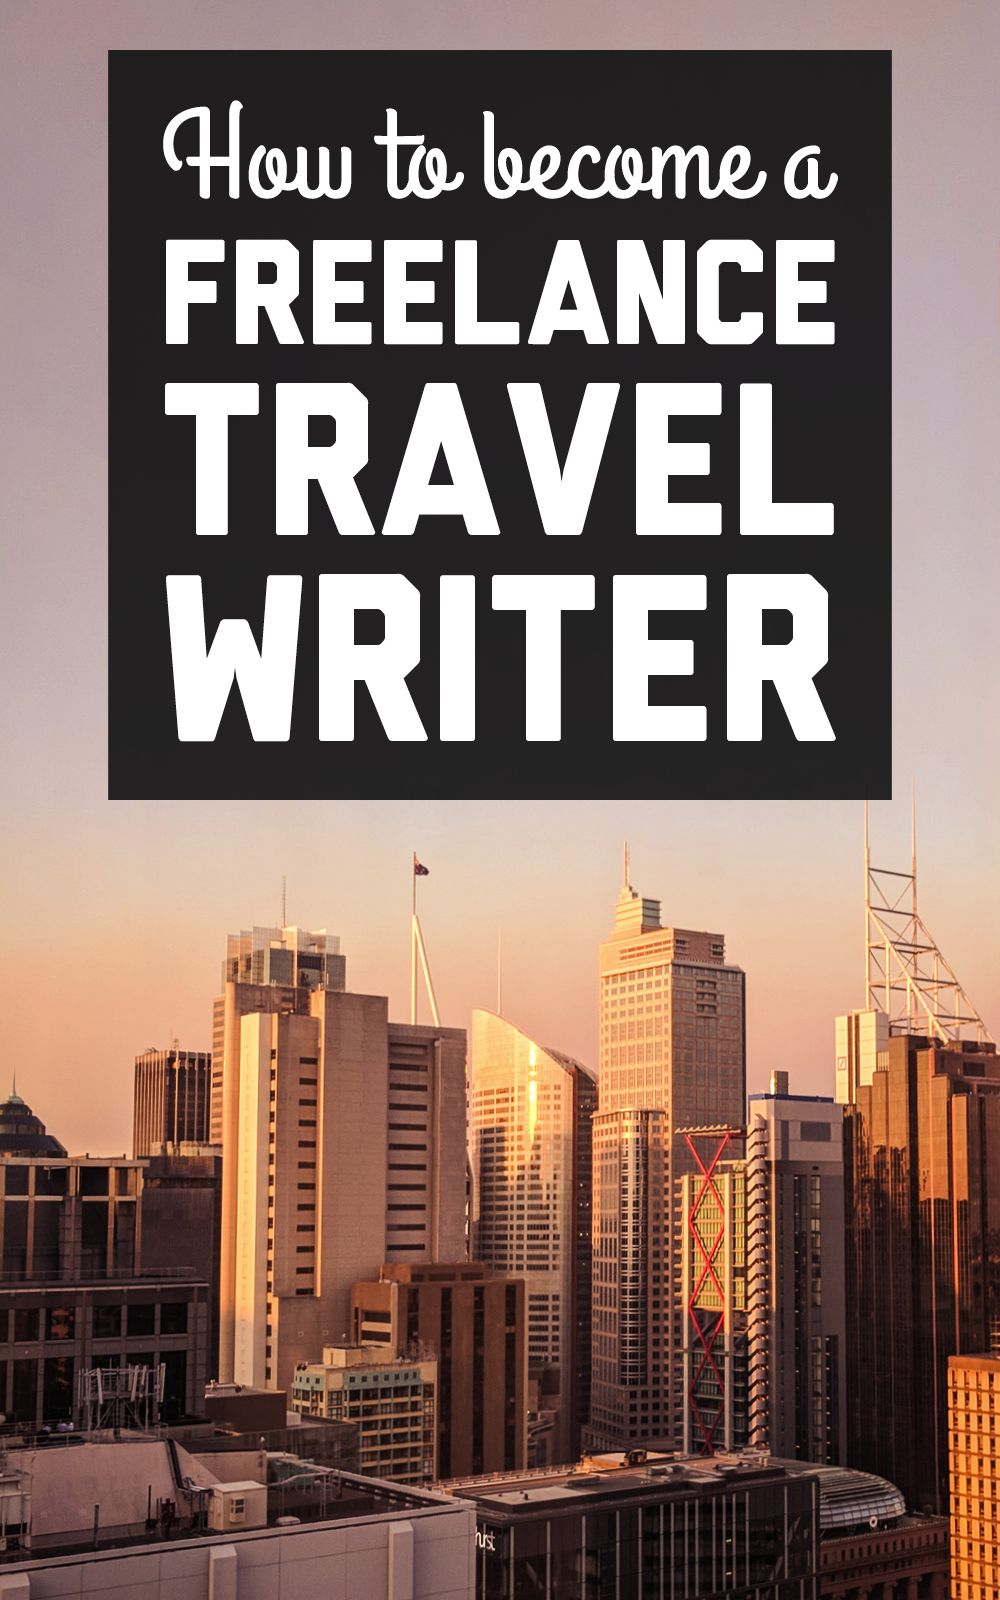 How to score freelance Travel Writing jobs in 2020